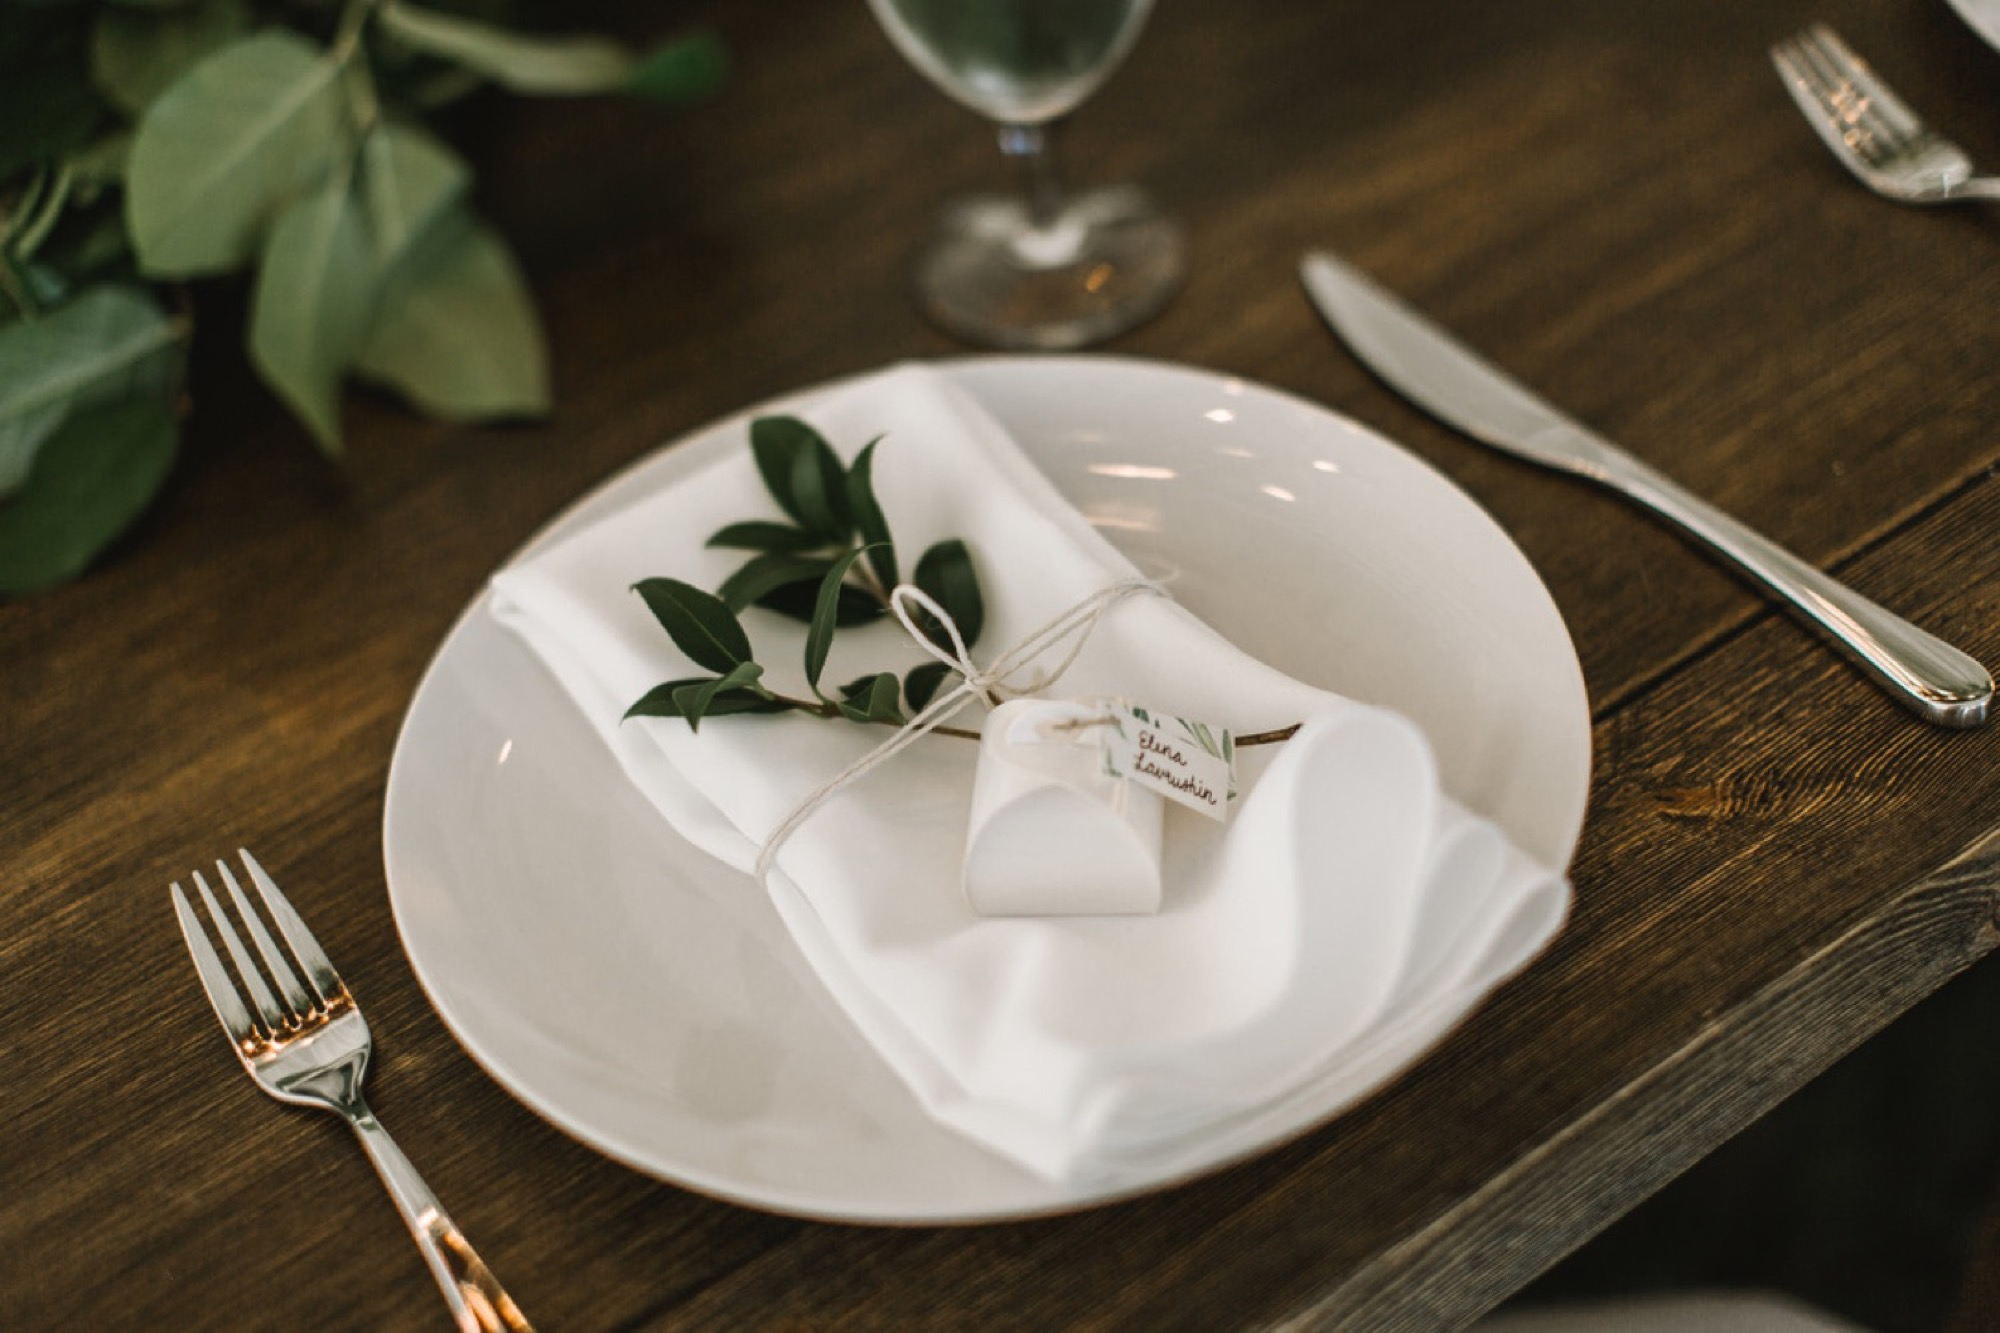 A simple and natural wedding tablescape at Pebble Cove Farm